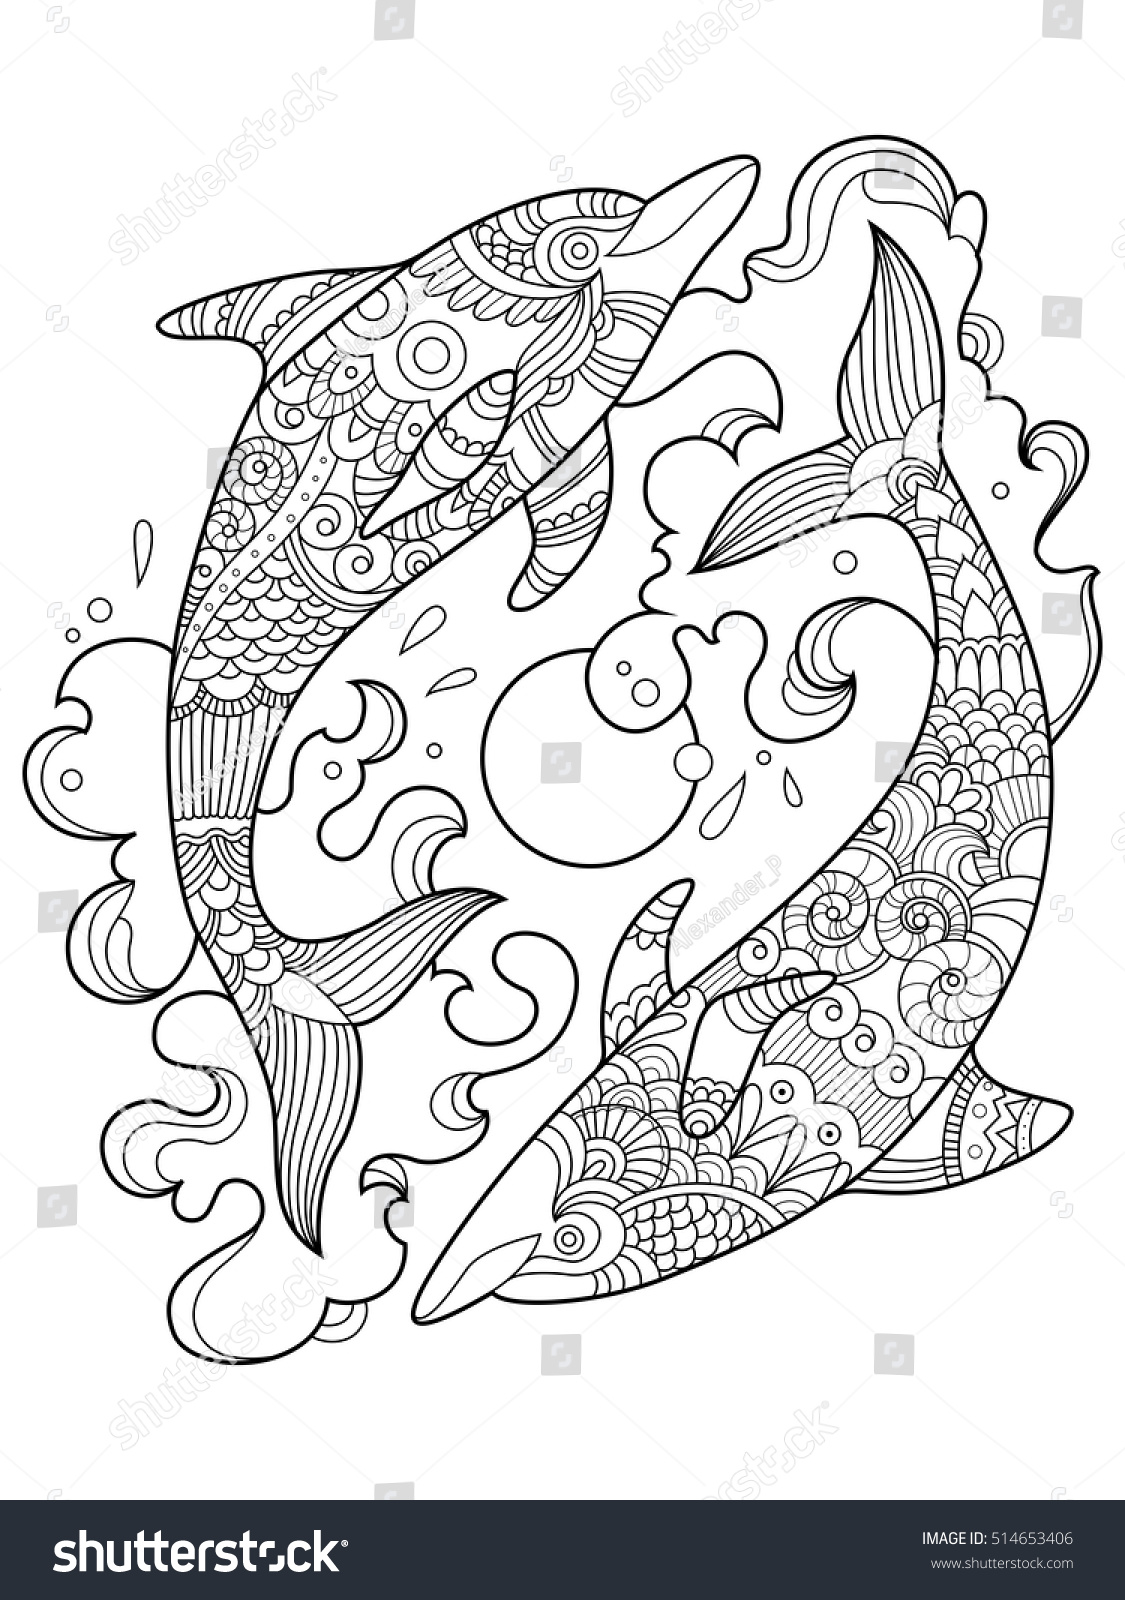 Dolphin Coloring Book Adults Vector Illustration Stock Vector ...